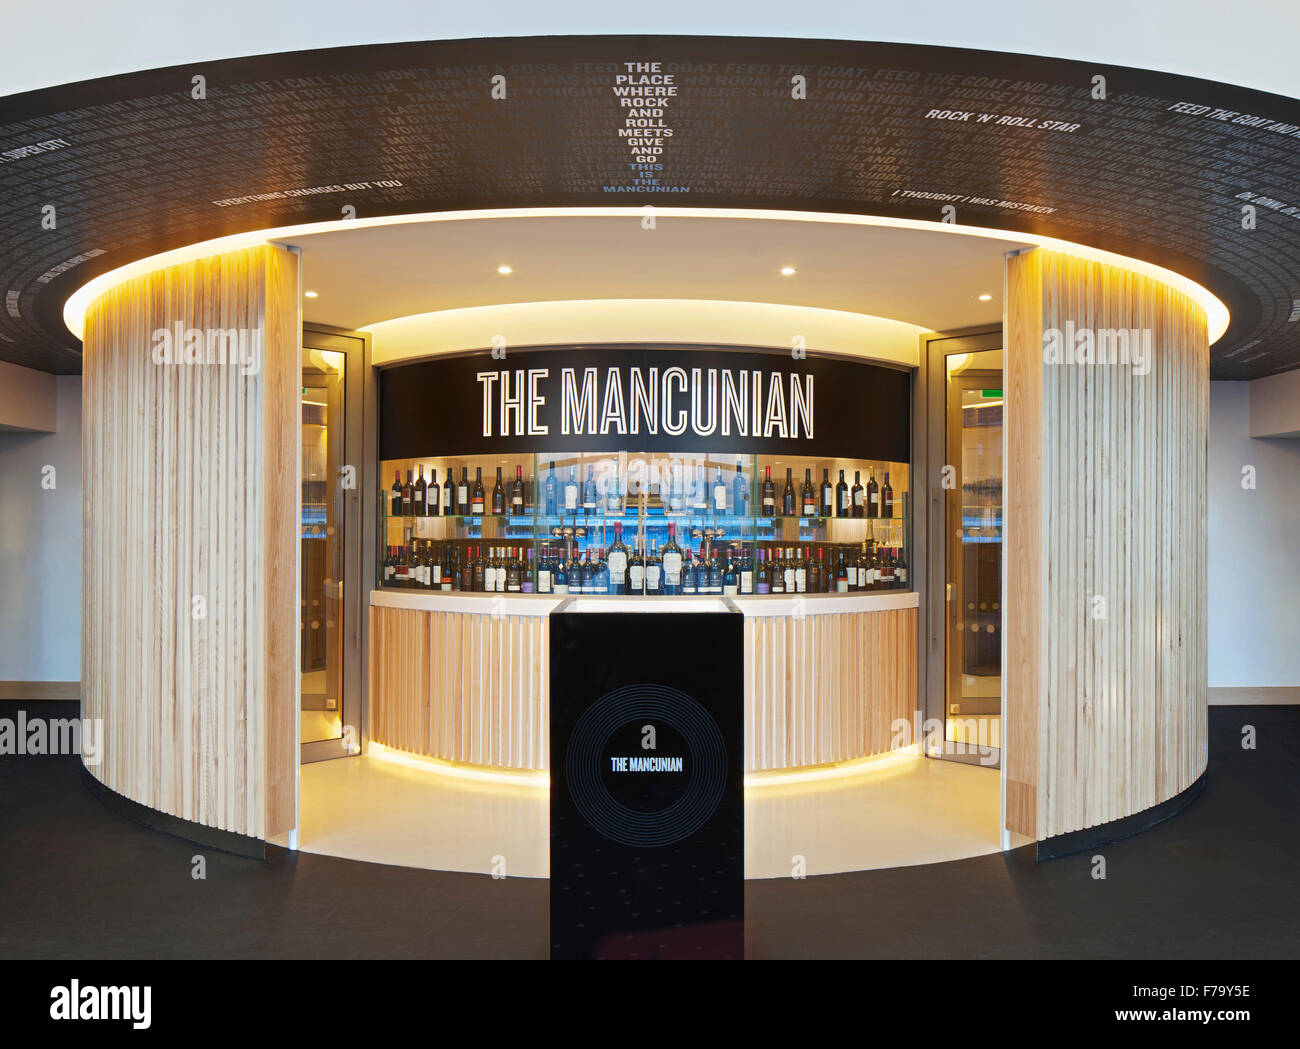 Entrance to The Mancunian at Etihad Stadium, Manchester City FC 2013, design by 20.20 - Stock Image